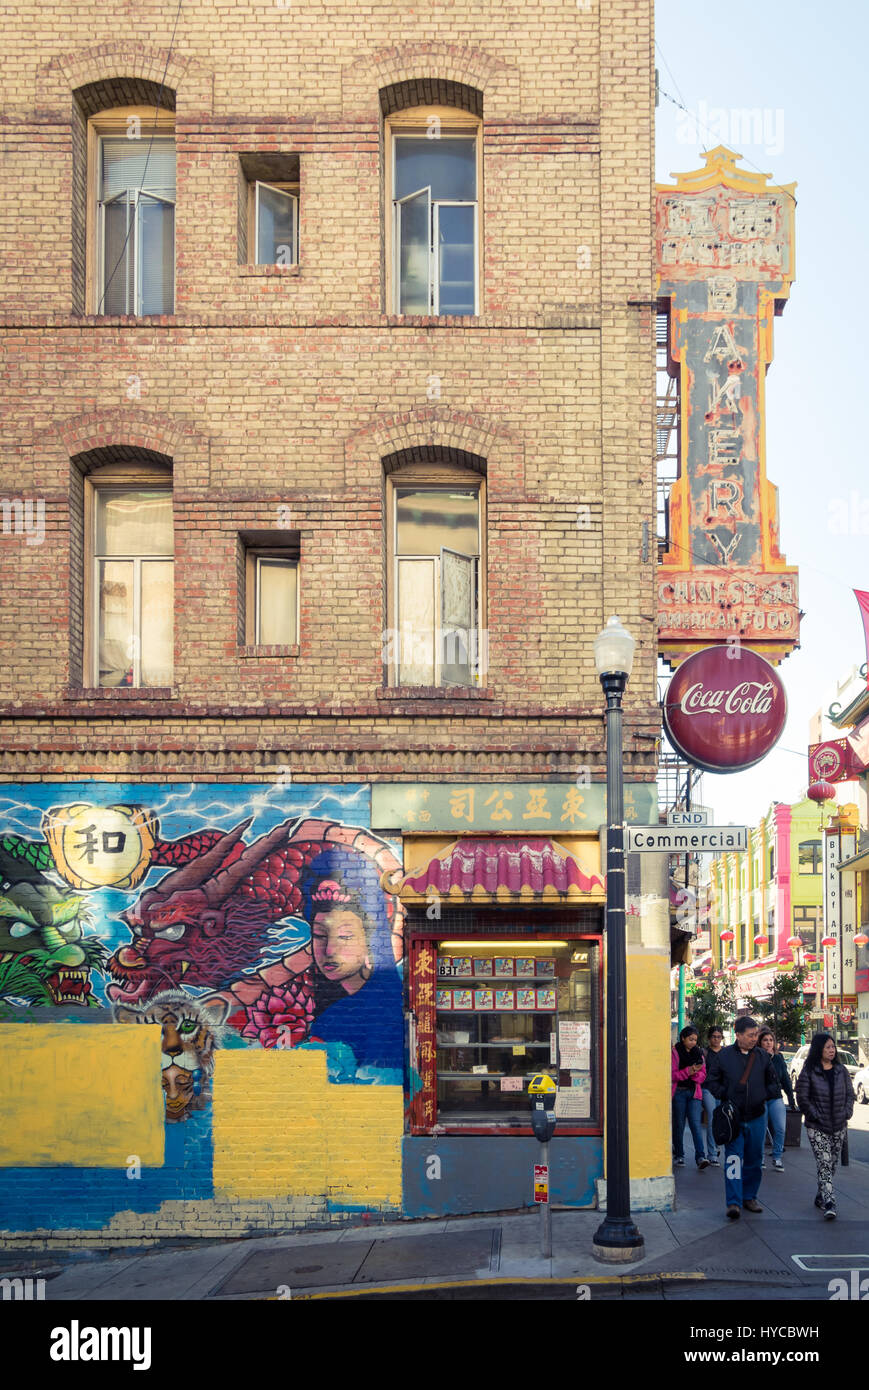 A view of the Eastern Bakery and an untitled mural by Francisco Aquino in Chinatown, San Francisco, California. - Stock Image